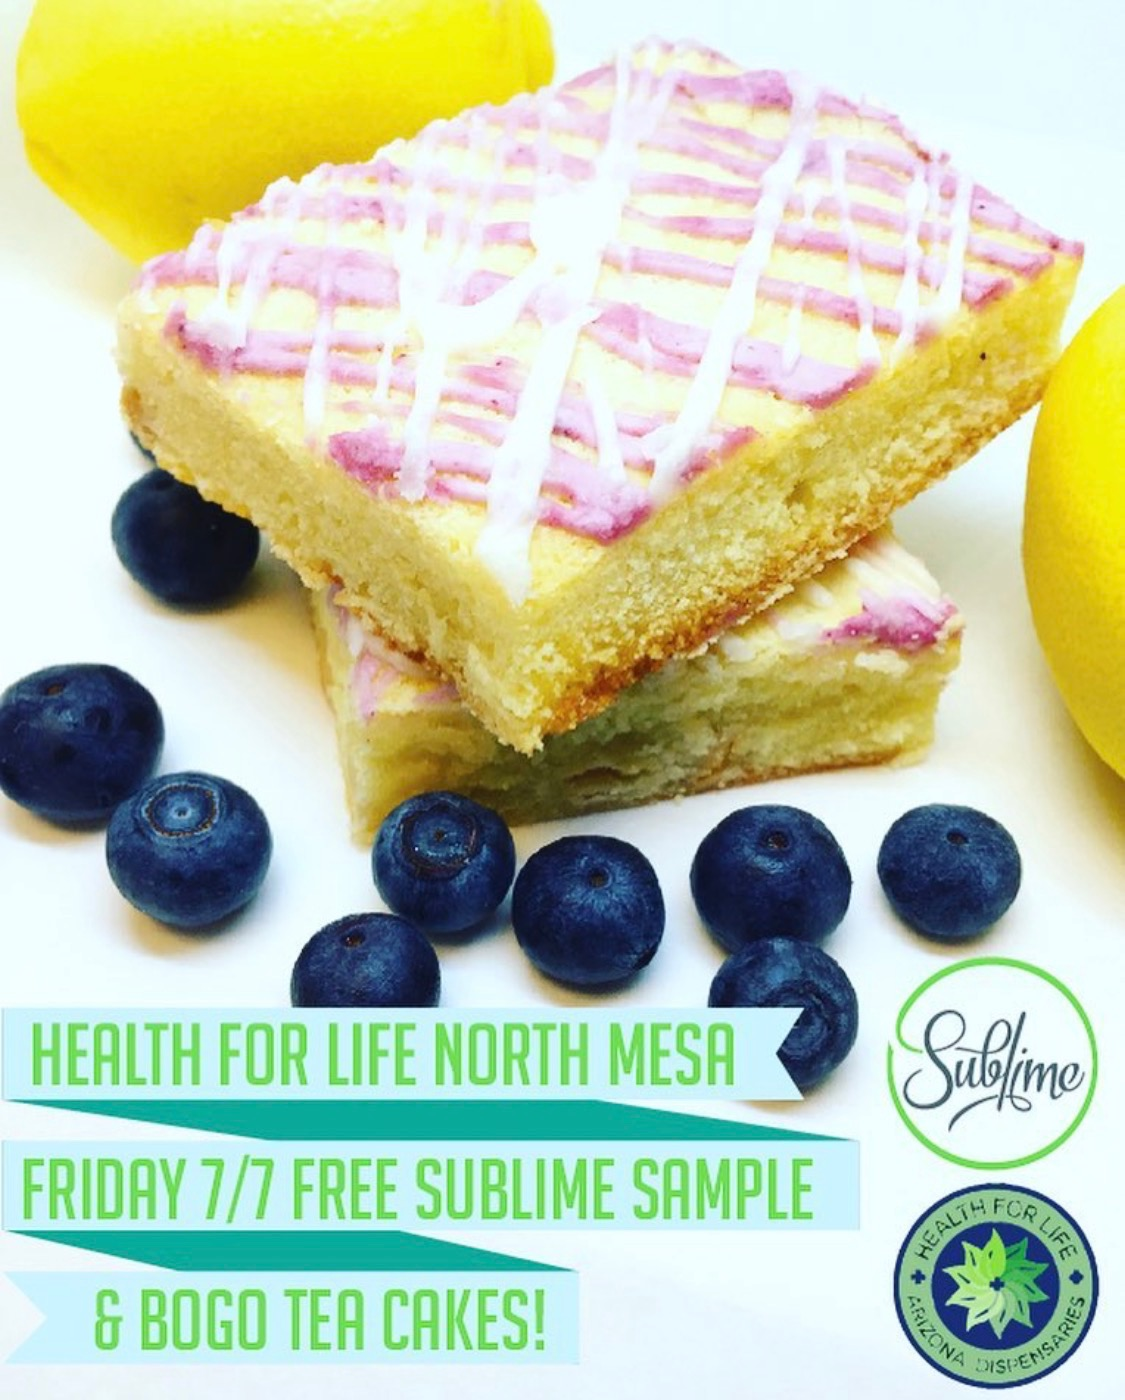 Sublime @ H4L North - Come meet the makers of your favorite edibles on July 7th!!